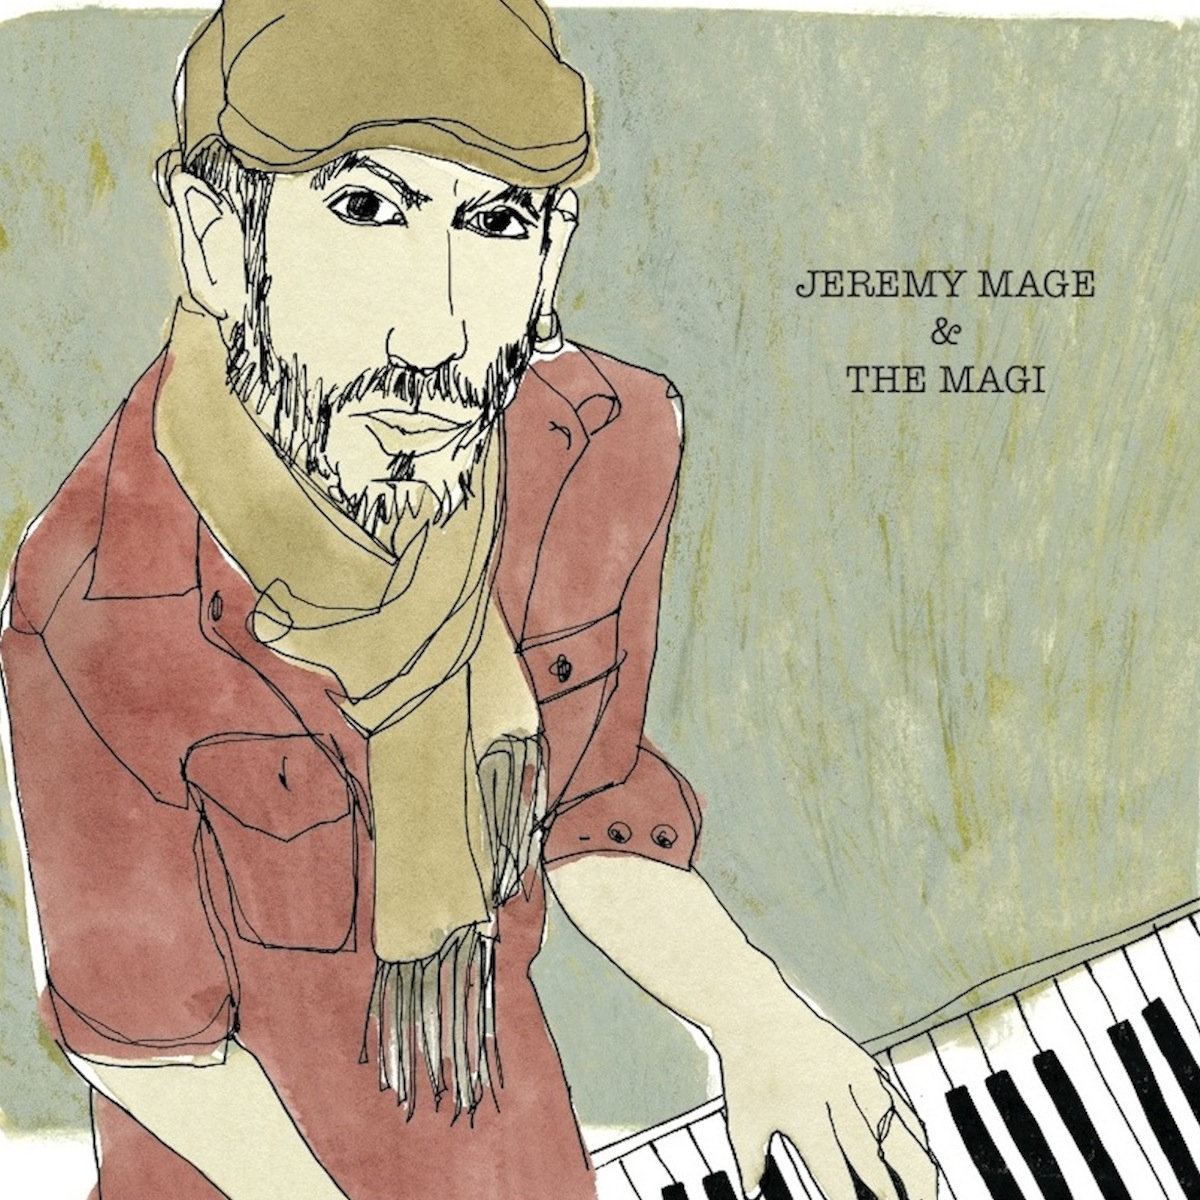 Jeremy Mage and The Magi artwork